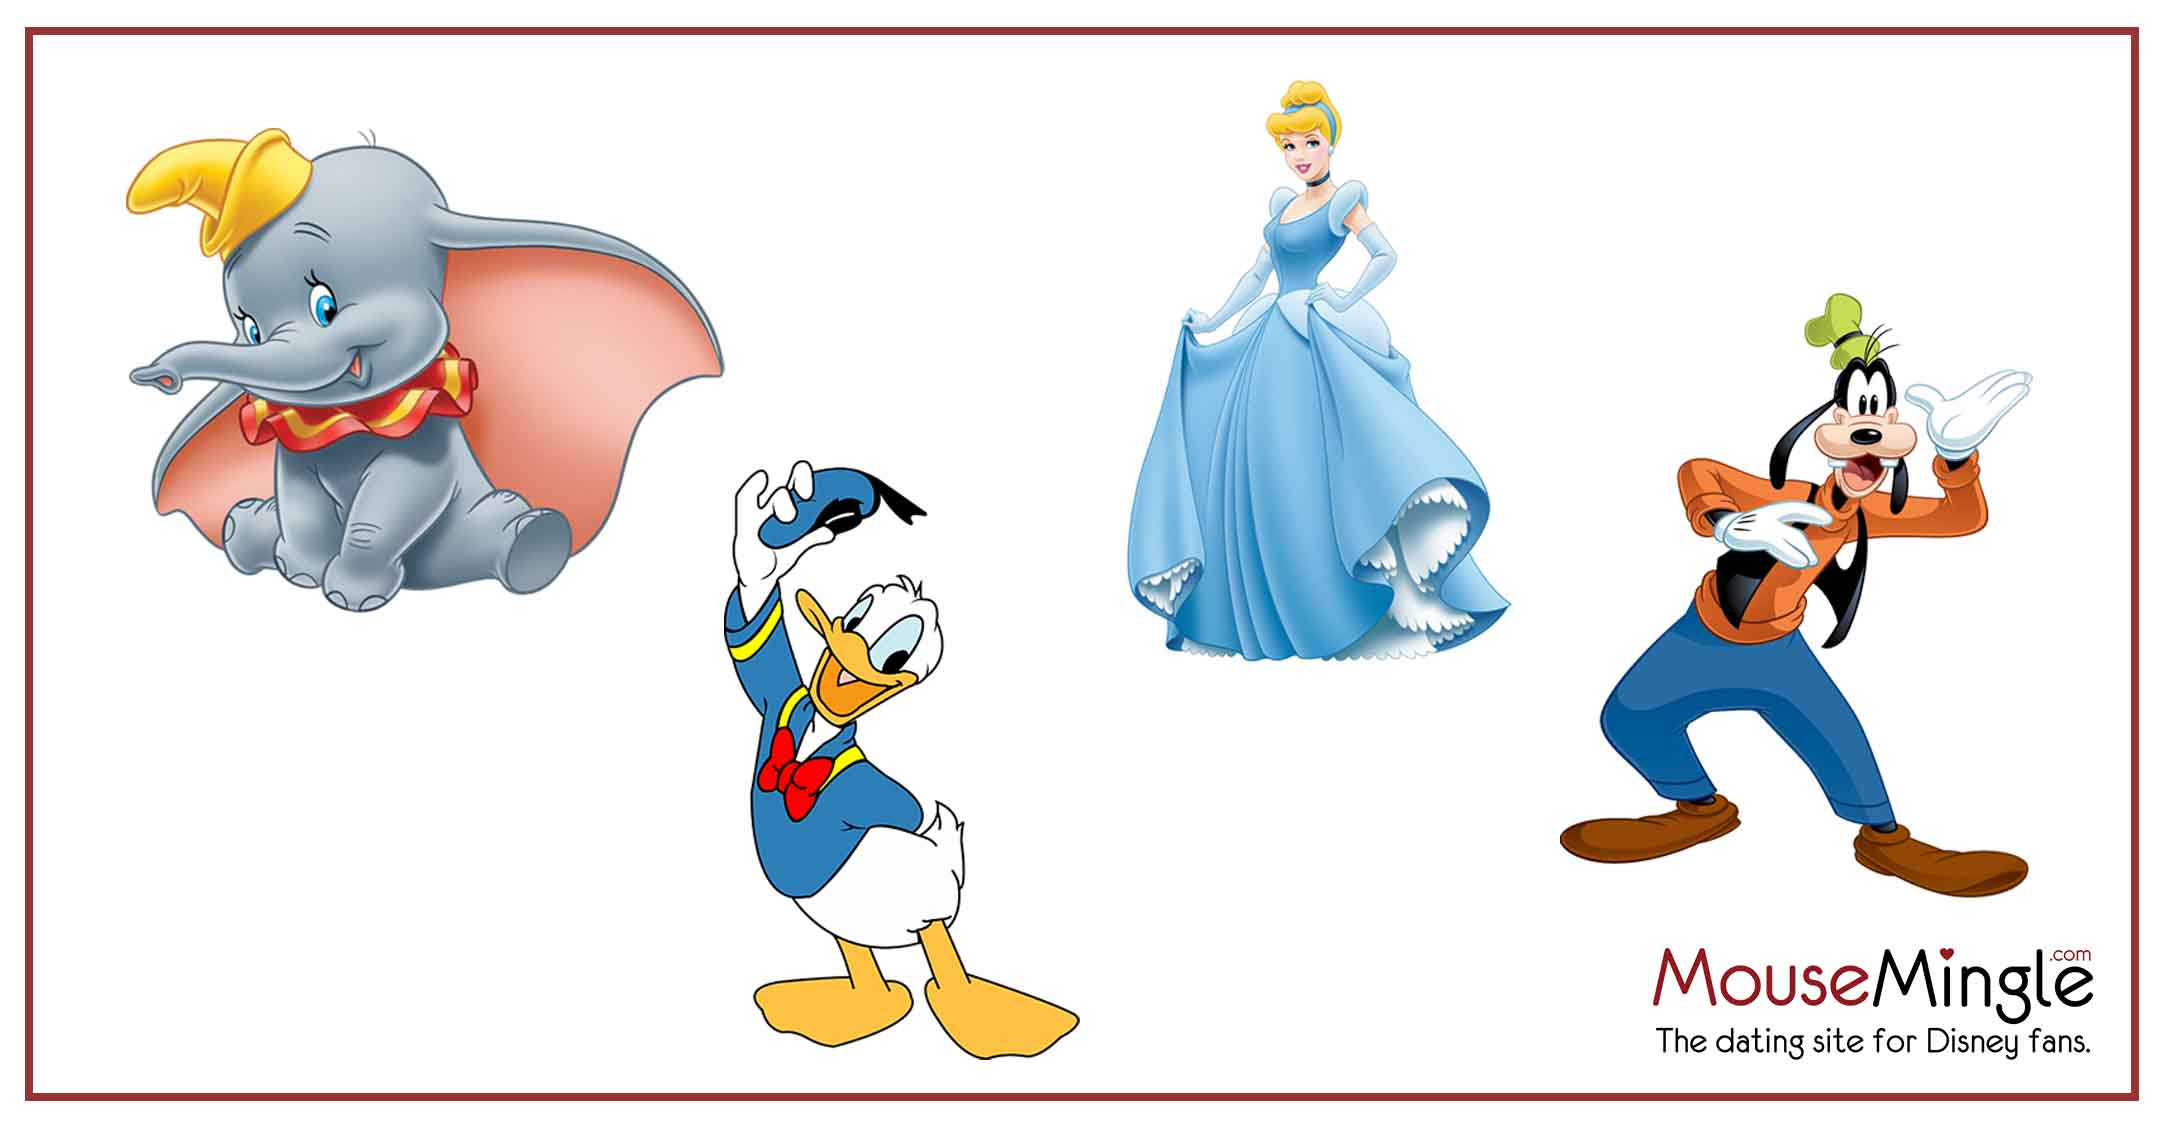 Which of these Disney characters do you like best?